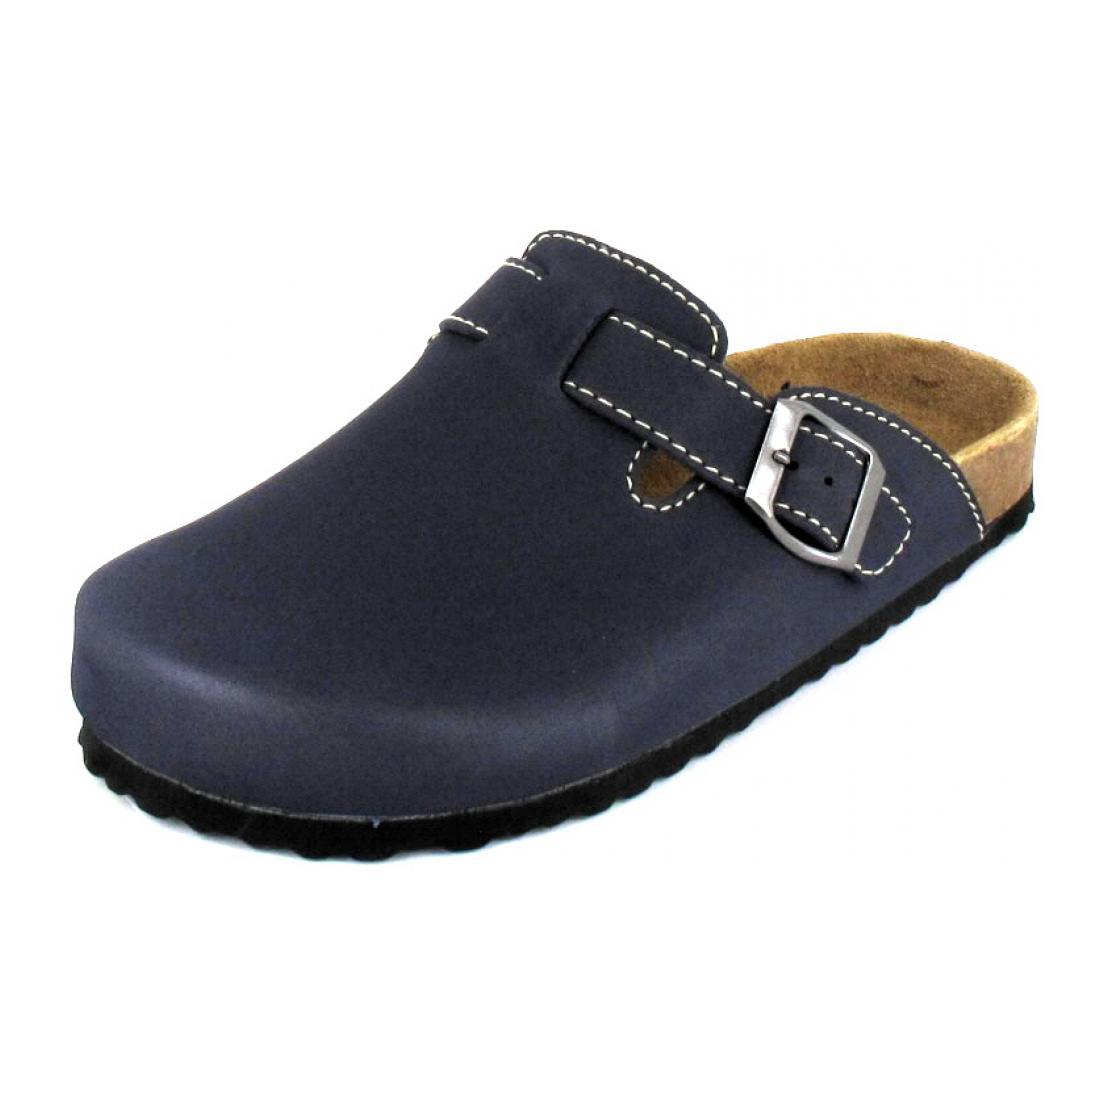 Indigo Clogs